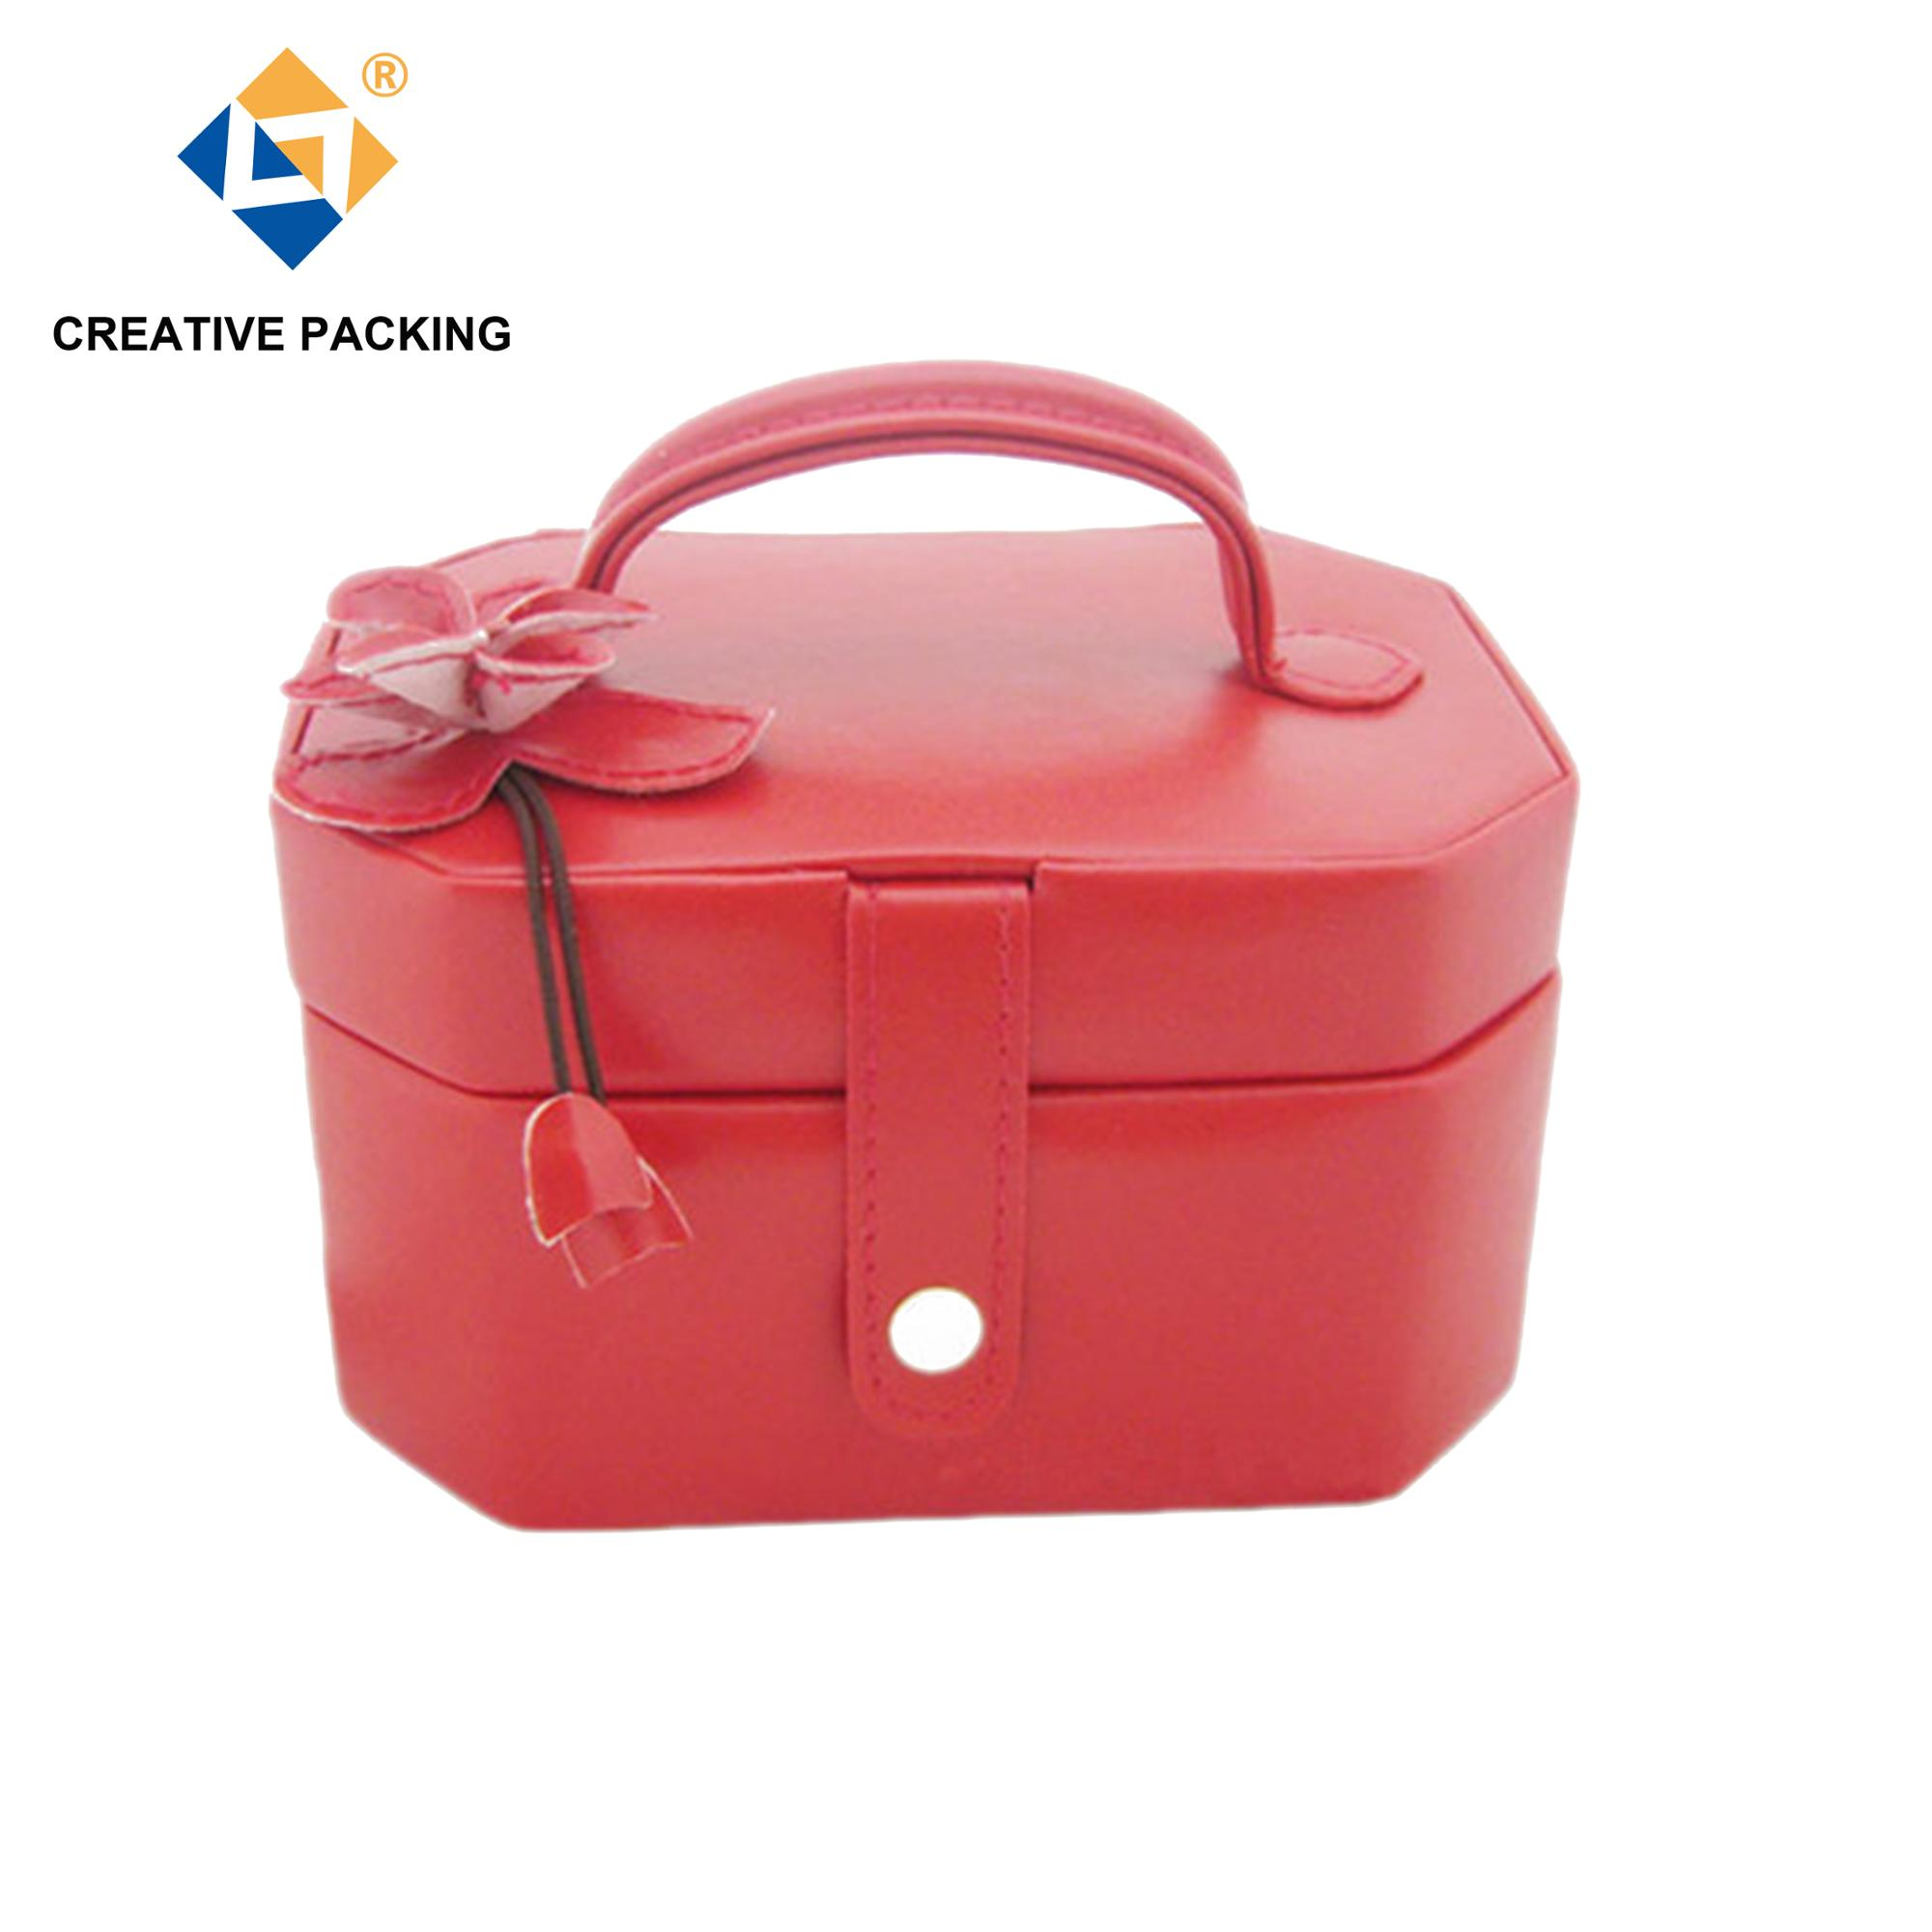 (CY-L3128) Jewelry Boxes With Key Lock And Many Compartments,Gemstone Jewelry Box,Gift Jewelry Music Box